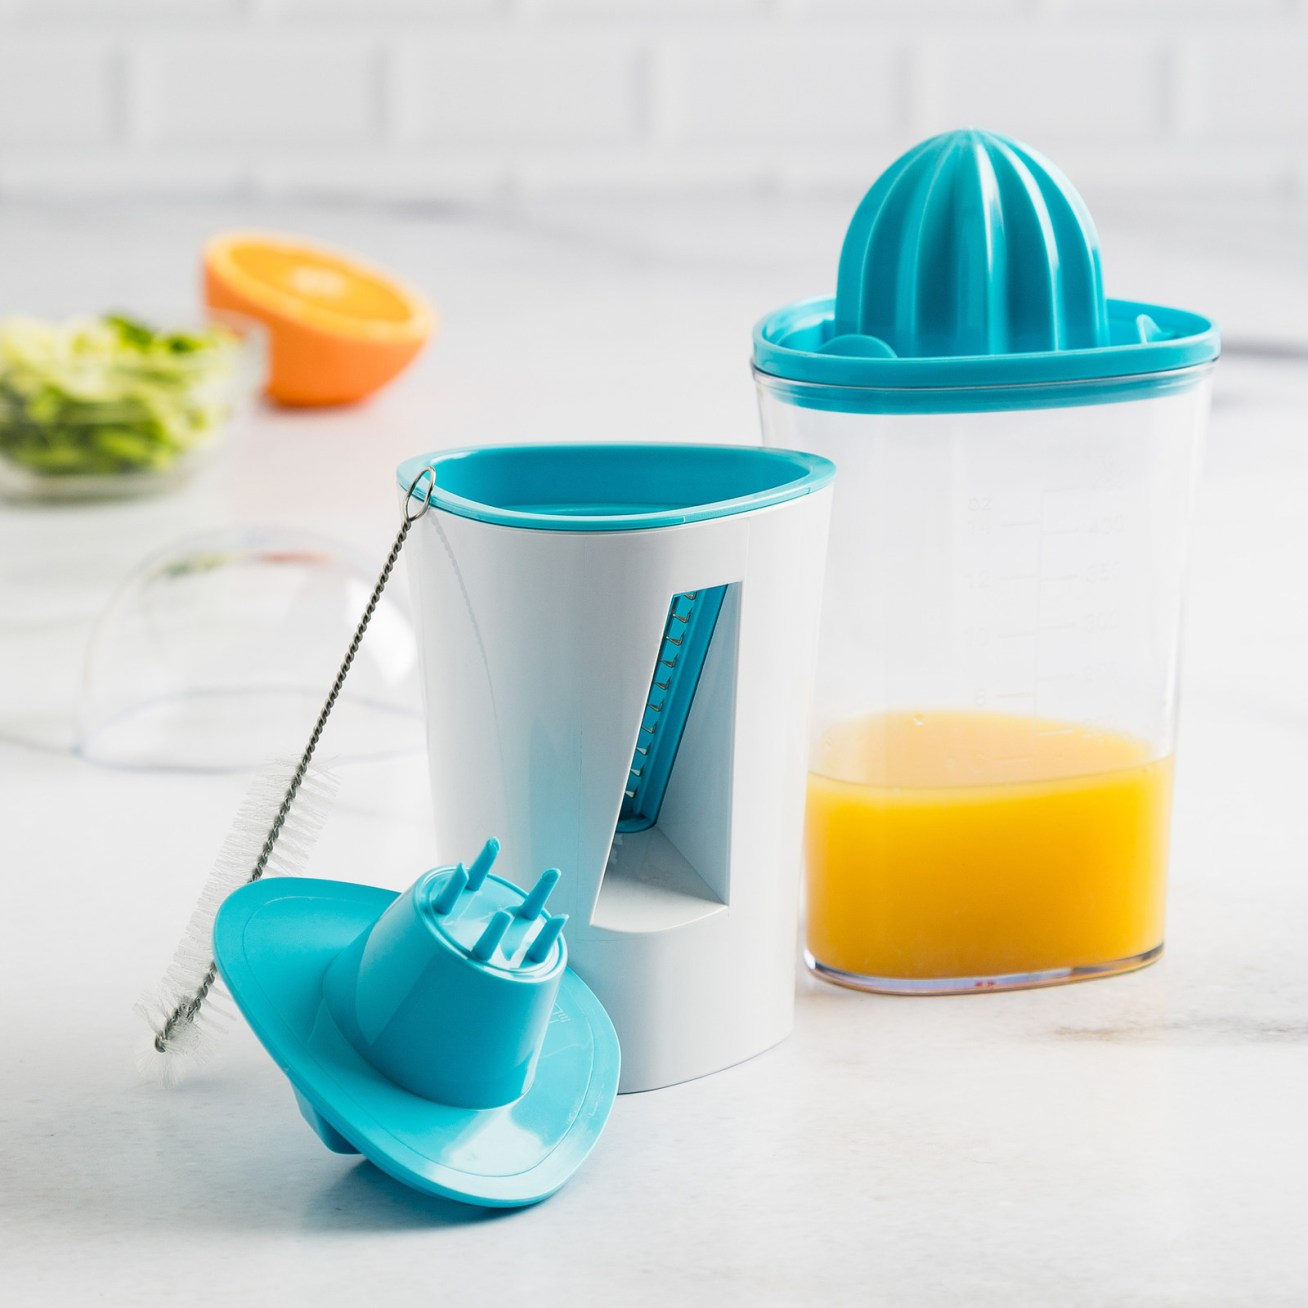 It can spiralize veggies, and then juice and measure citrus. It also comes with a lil' cleaning brush. Price: .97